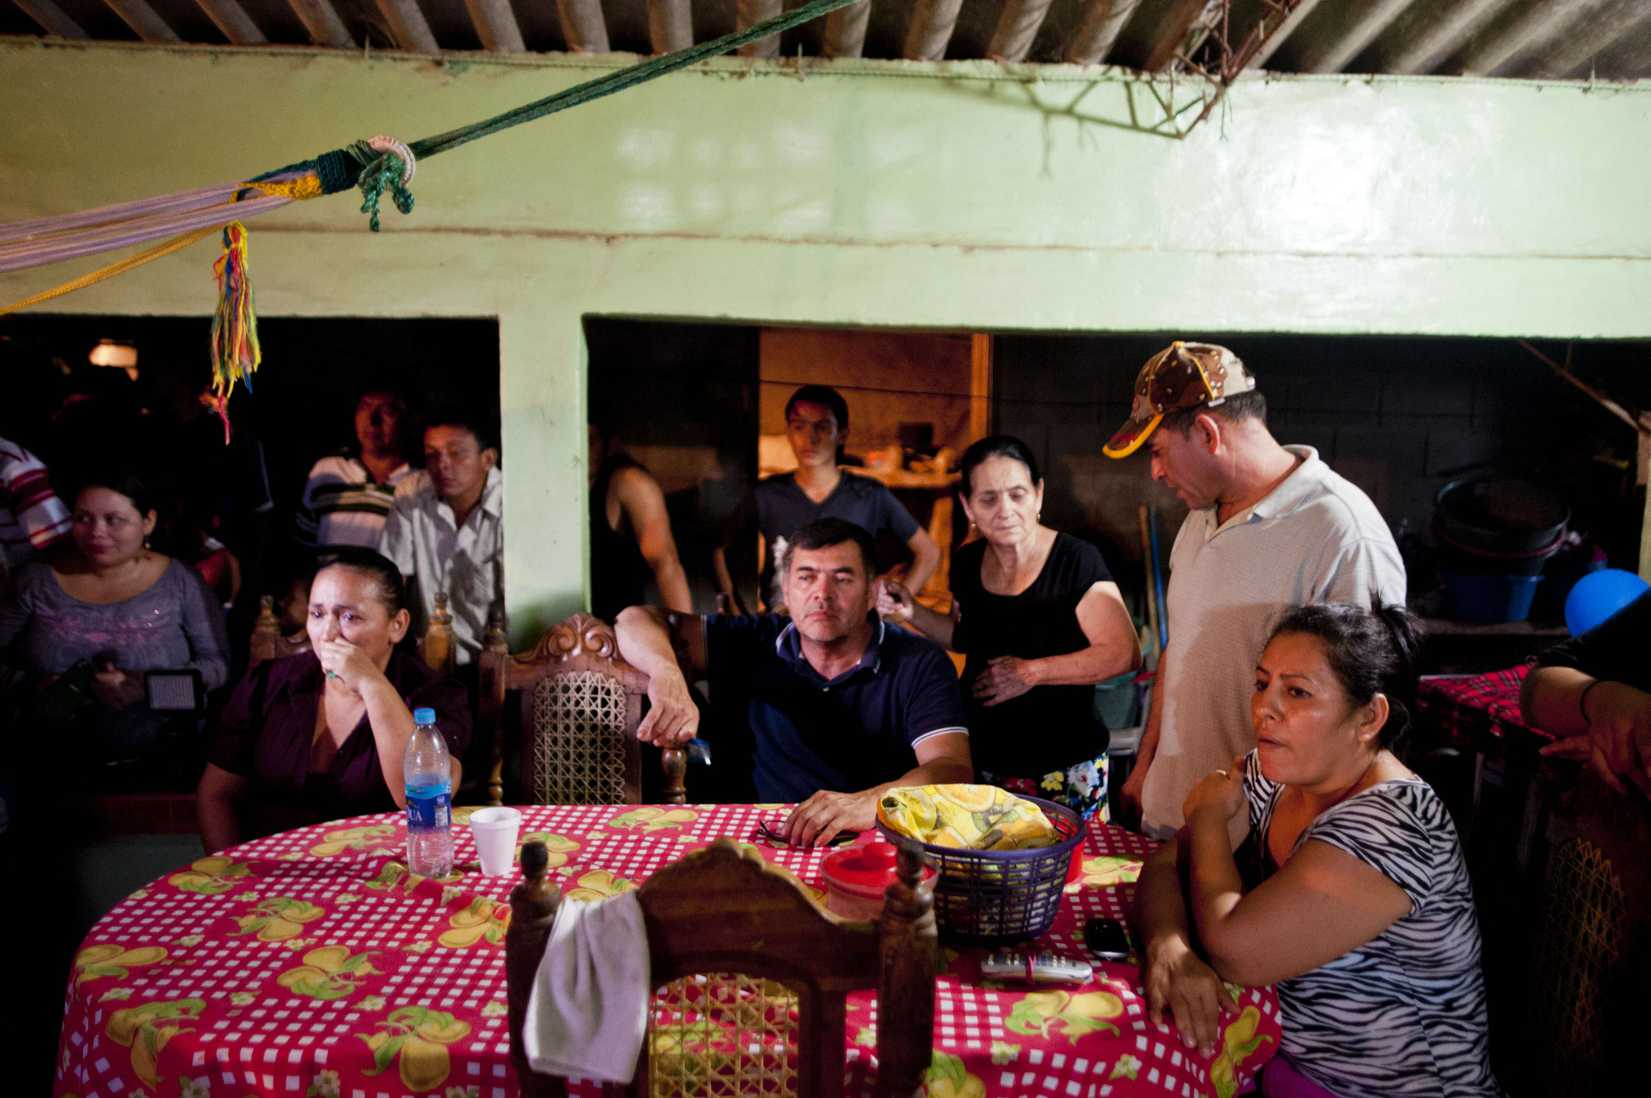 Pacific castaway Jose Salvador Alvarenga's family watch the broadcast of his arrival at their house in Garita Palmera 118 km. west from San Salvador, El Salvador, on February 11, 2014.